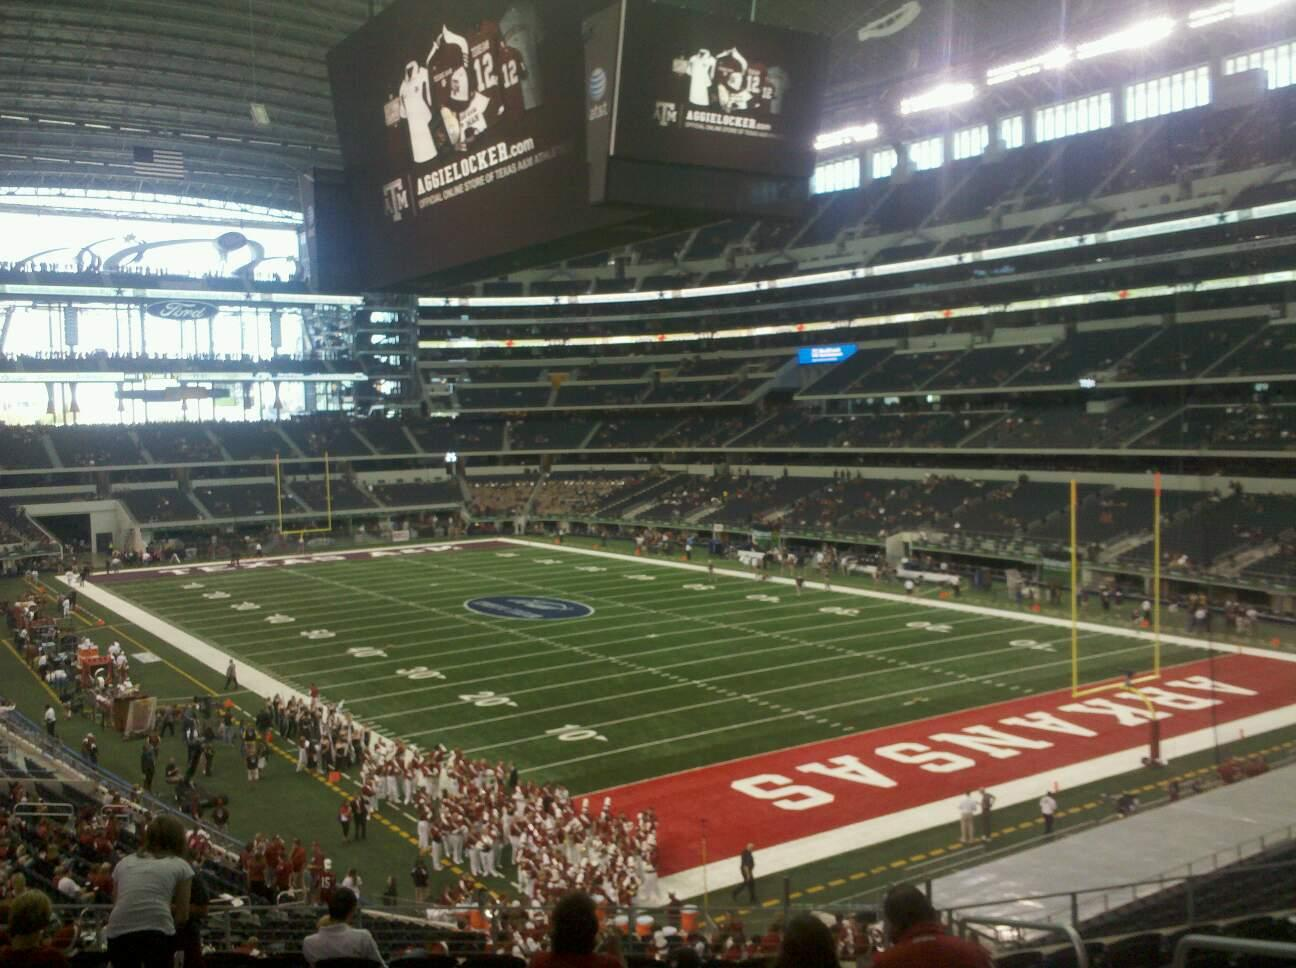 AT&T Stadium Section 227 Row 12 Seat 4